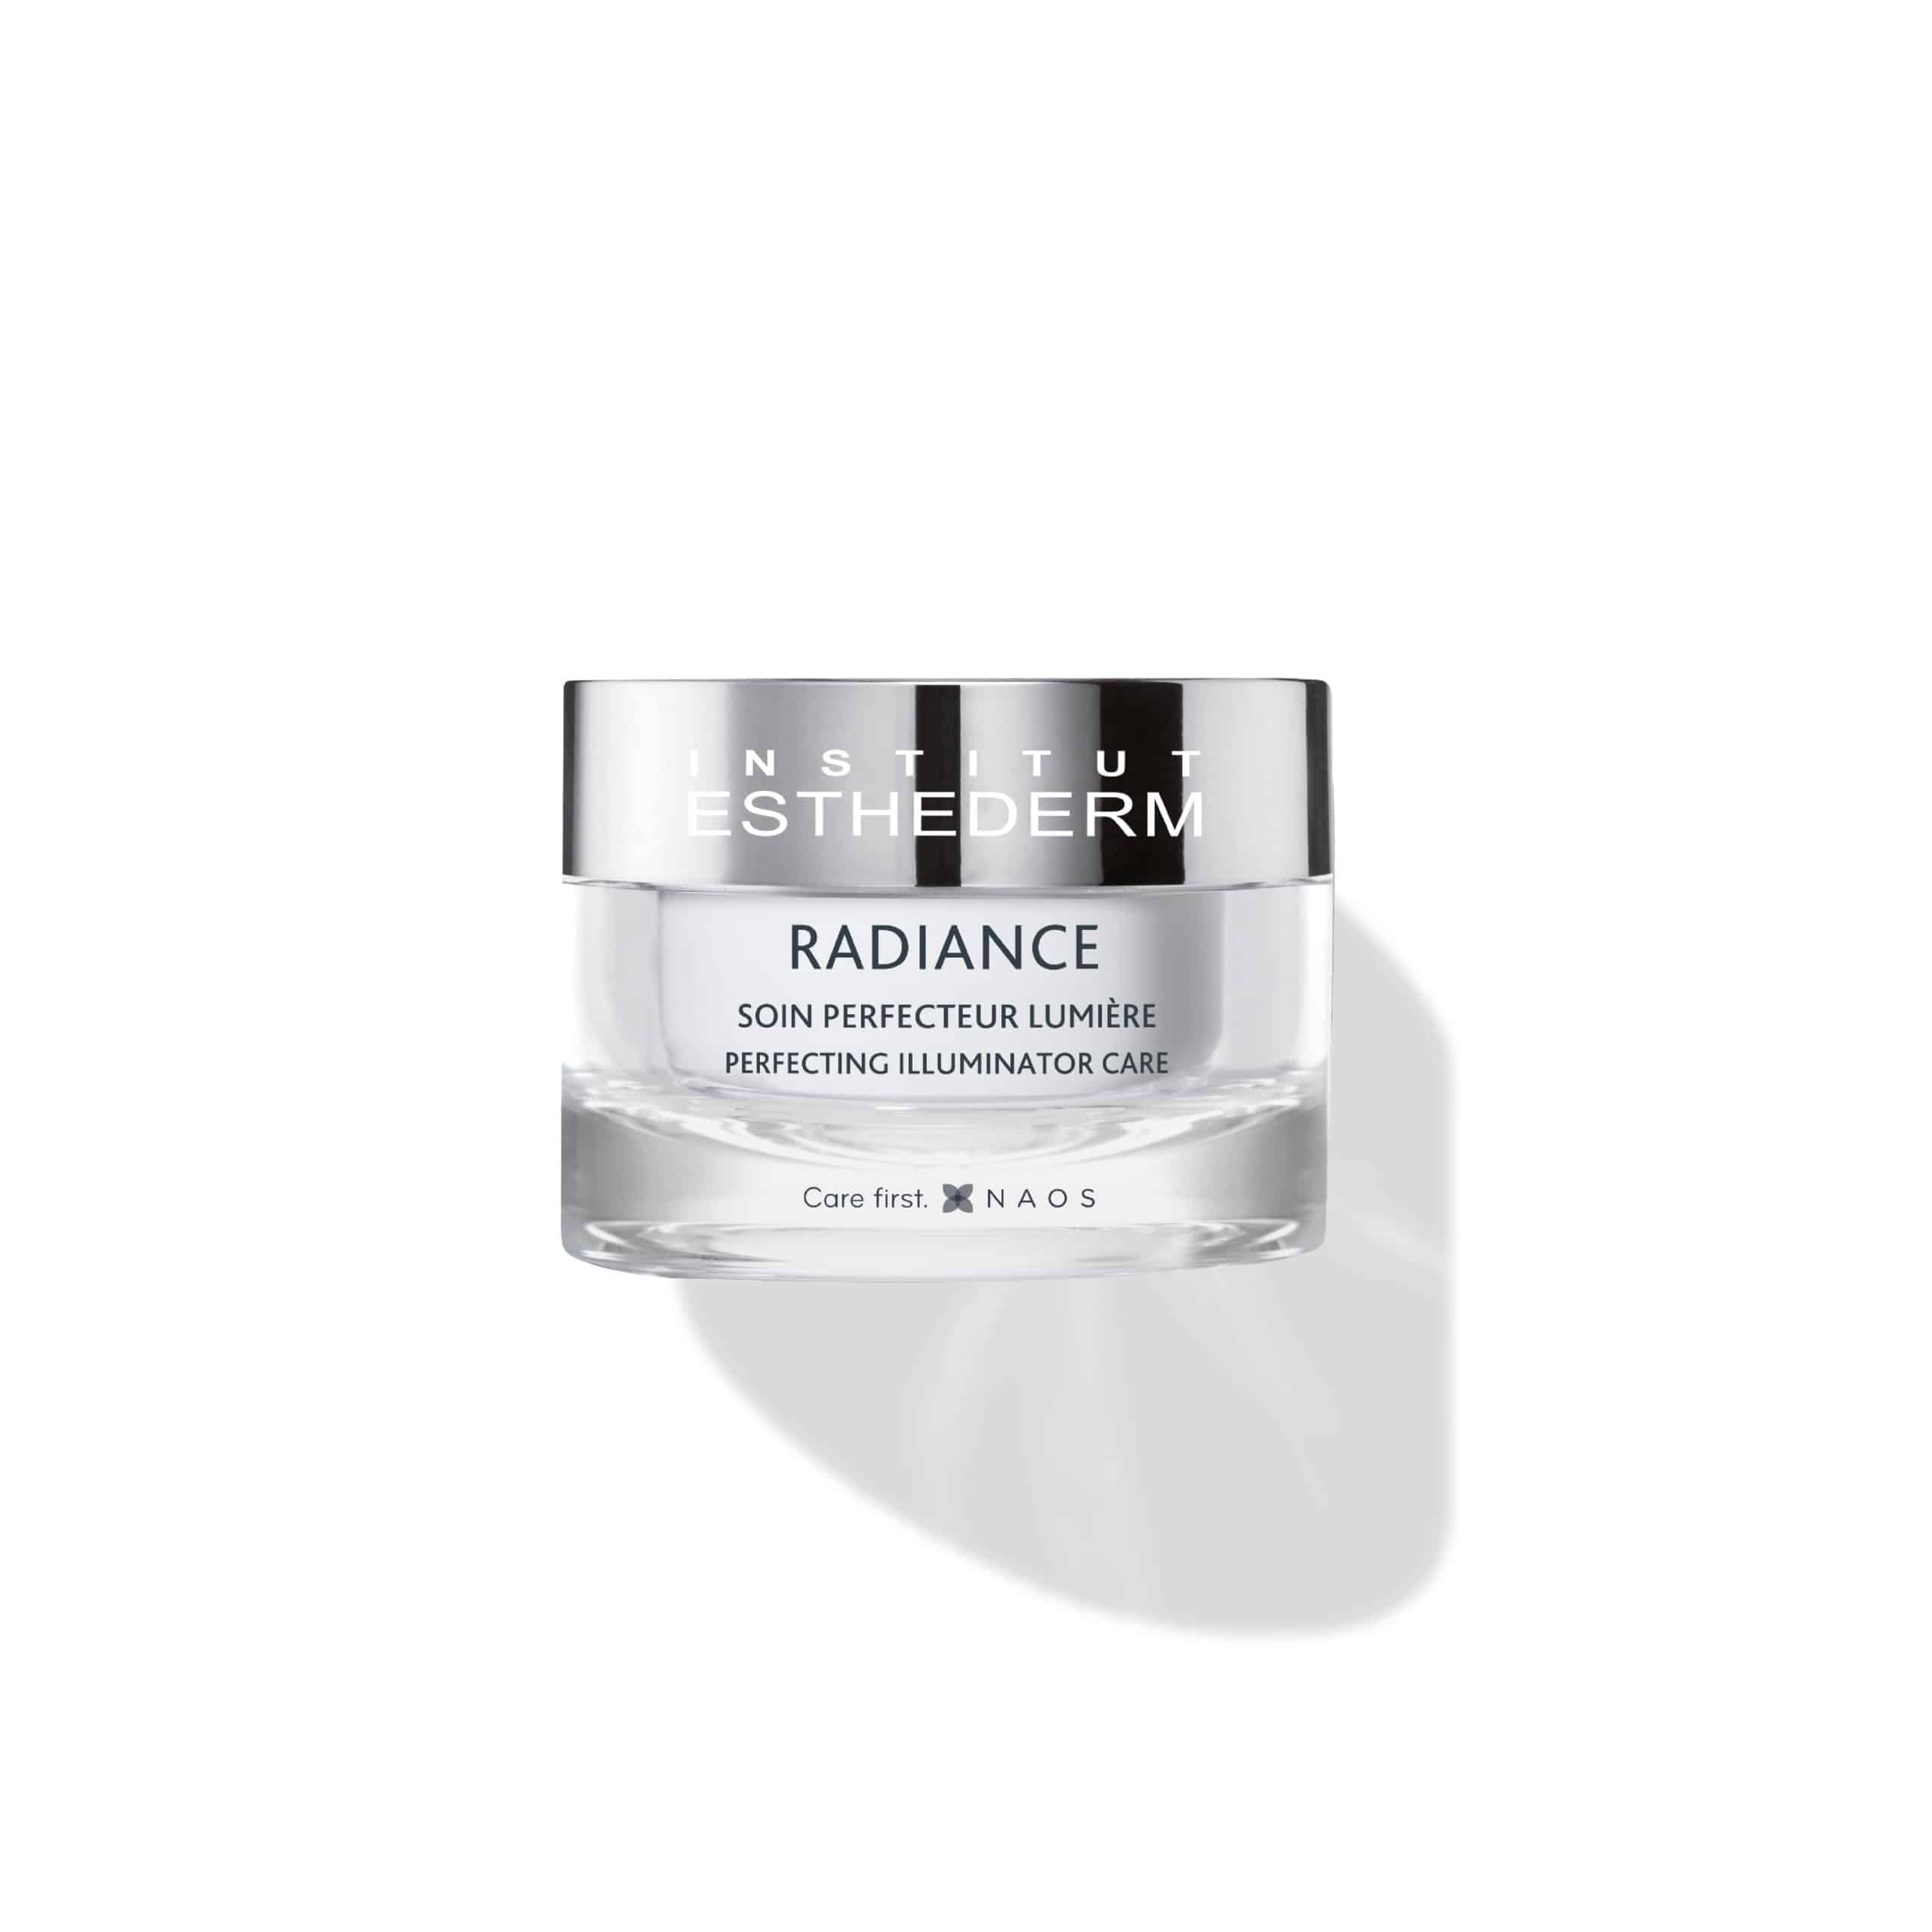 ESTHEDERM product photo, Radiance Cream 50ml, detoxifying illuminating care, moisturizes, treats signs of fatigue and aging